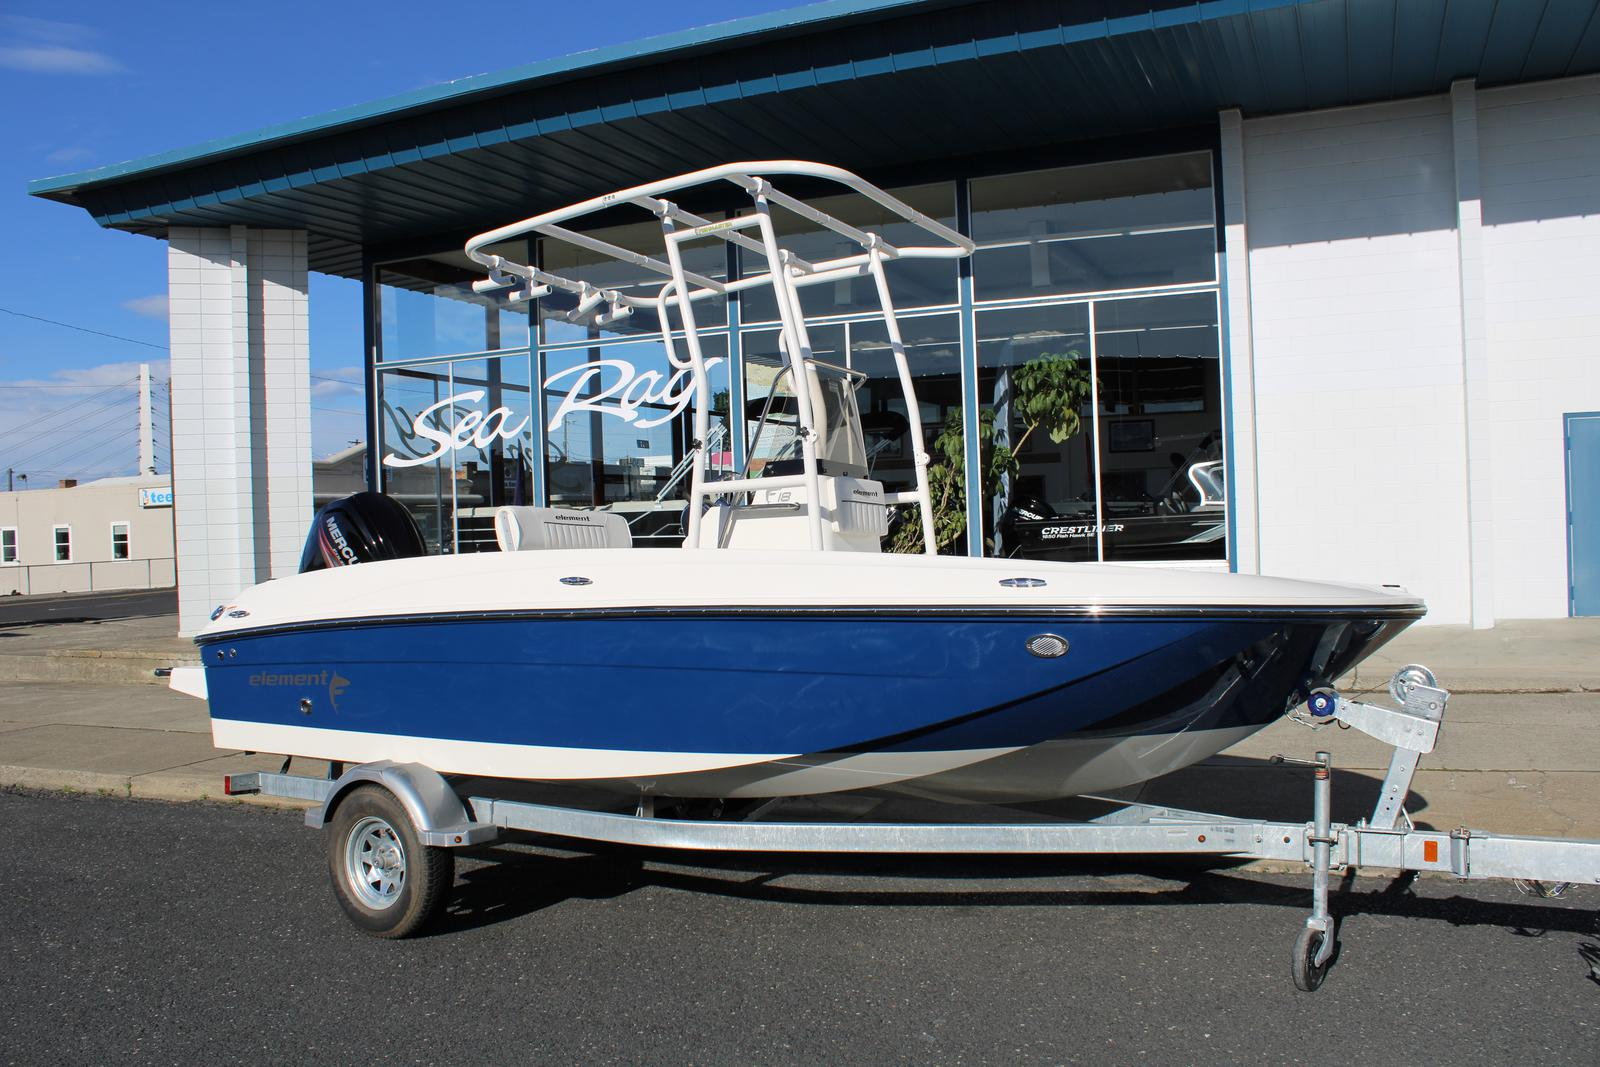 2019 Bayliner boat for sale, model of the boat is Element F18 & Image # 1 of 6